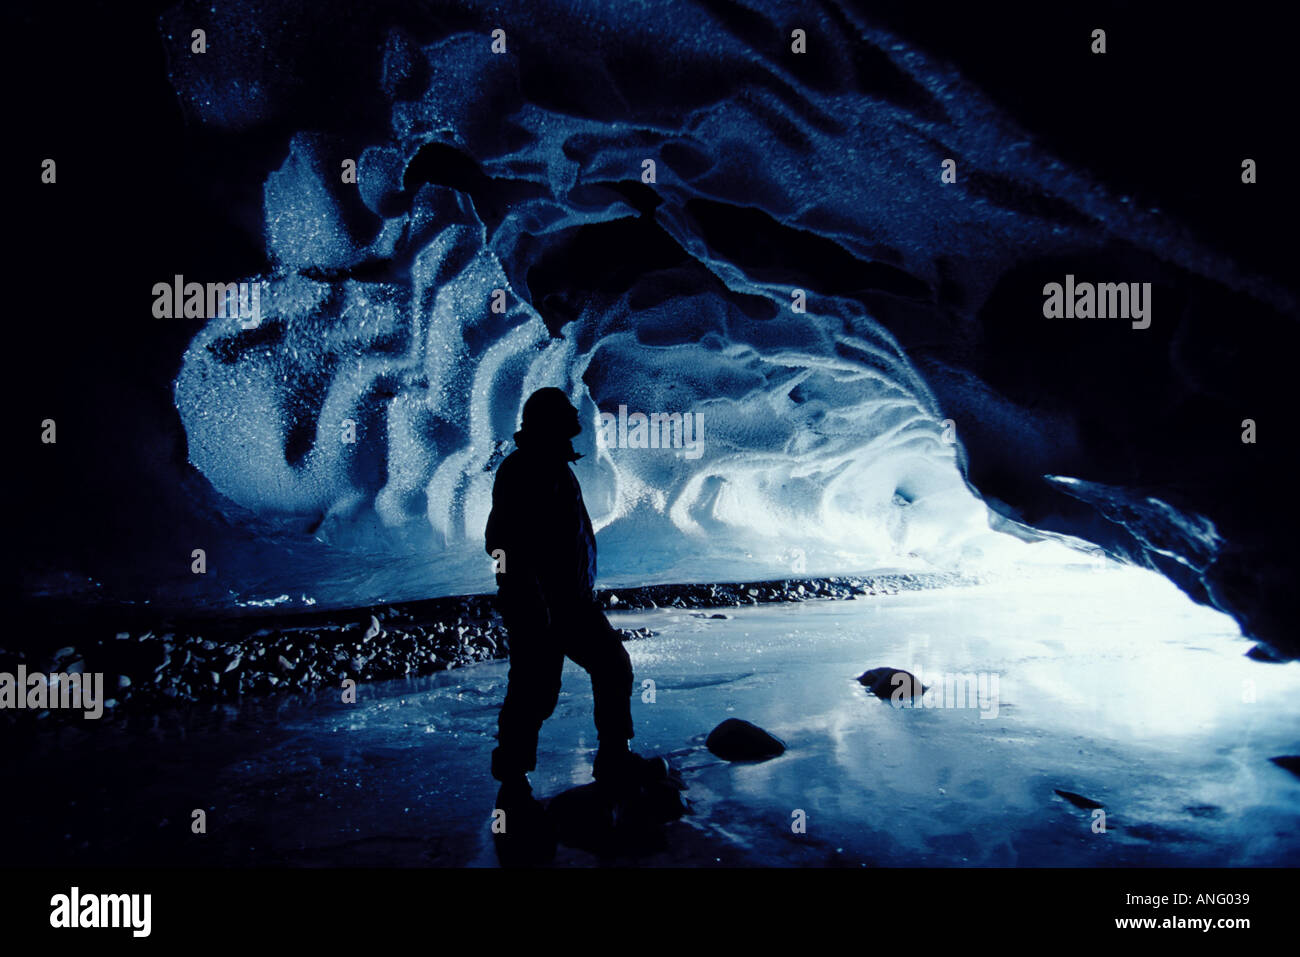 Male Hiker in Ice Cave Near Valdez SC Alaska Winter - Stock Image